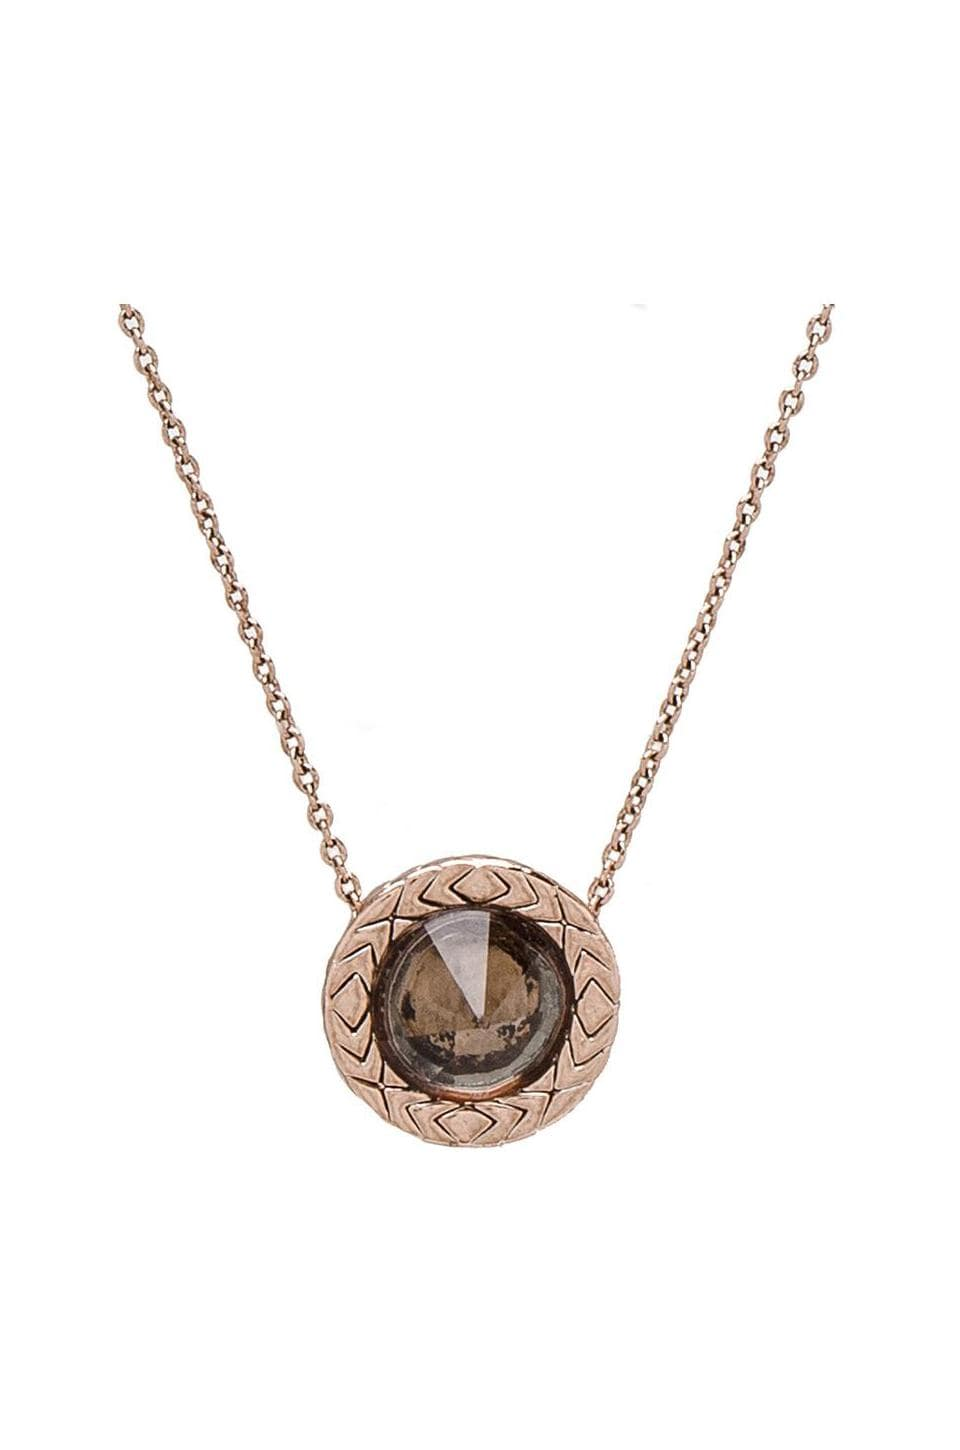 House of Harlow 1960 House of Harlow Olbers Paradox Pendant Necklace in Rose Gold